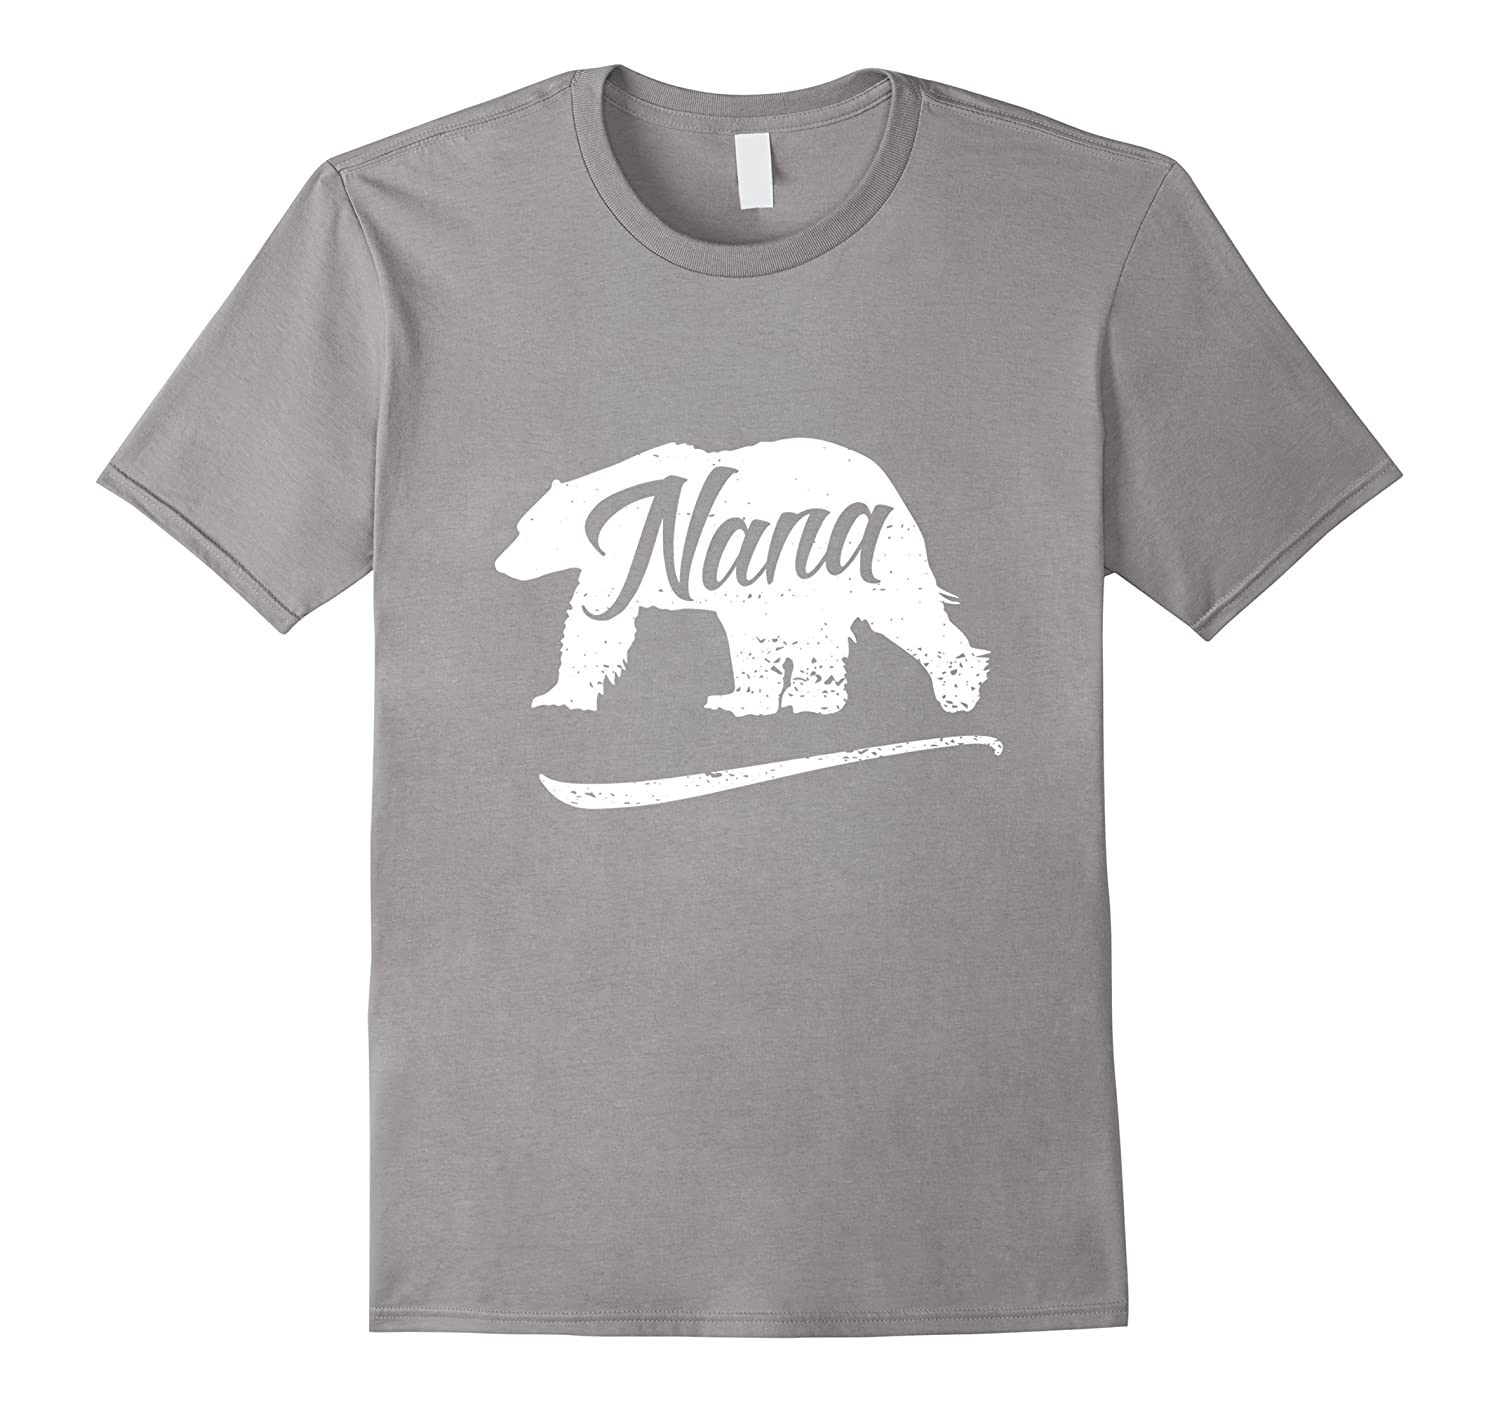 Cute Nana Bear T-Shirt Wild Fishing Hiking Walking Outdoors-PL